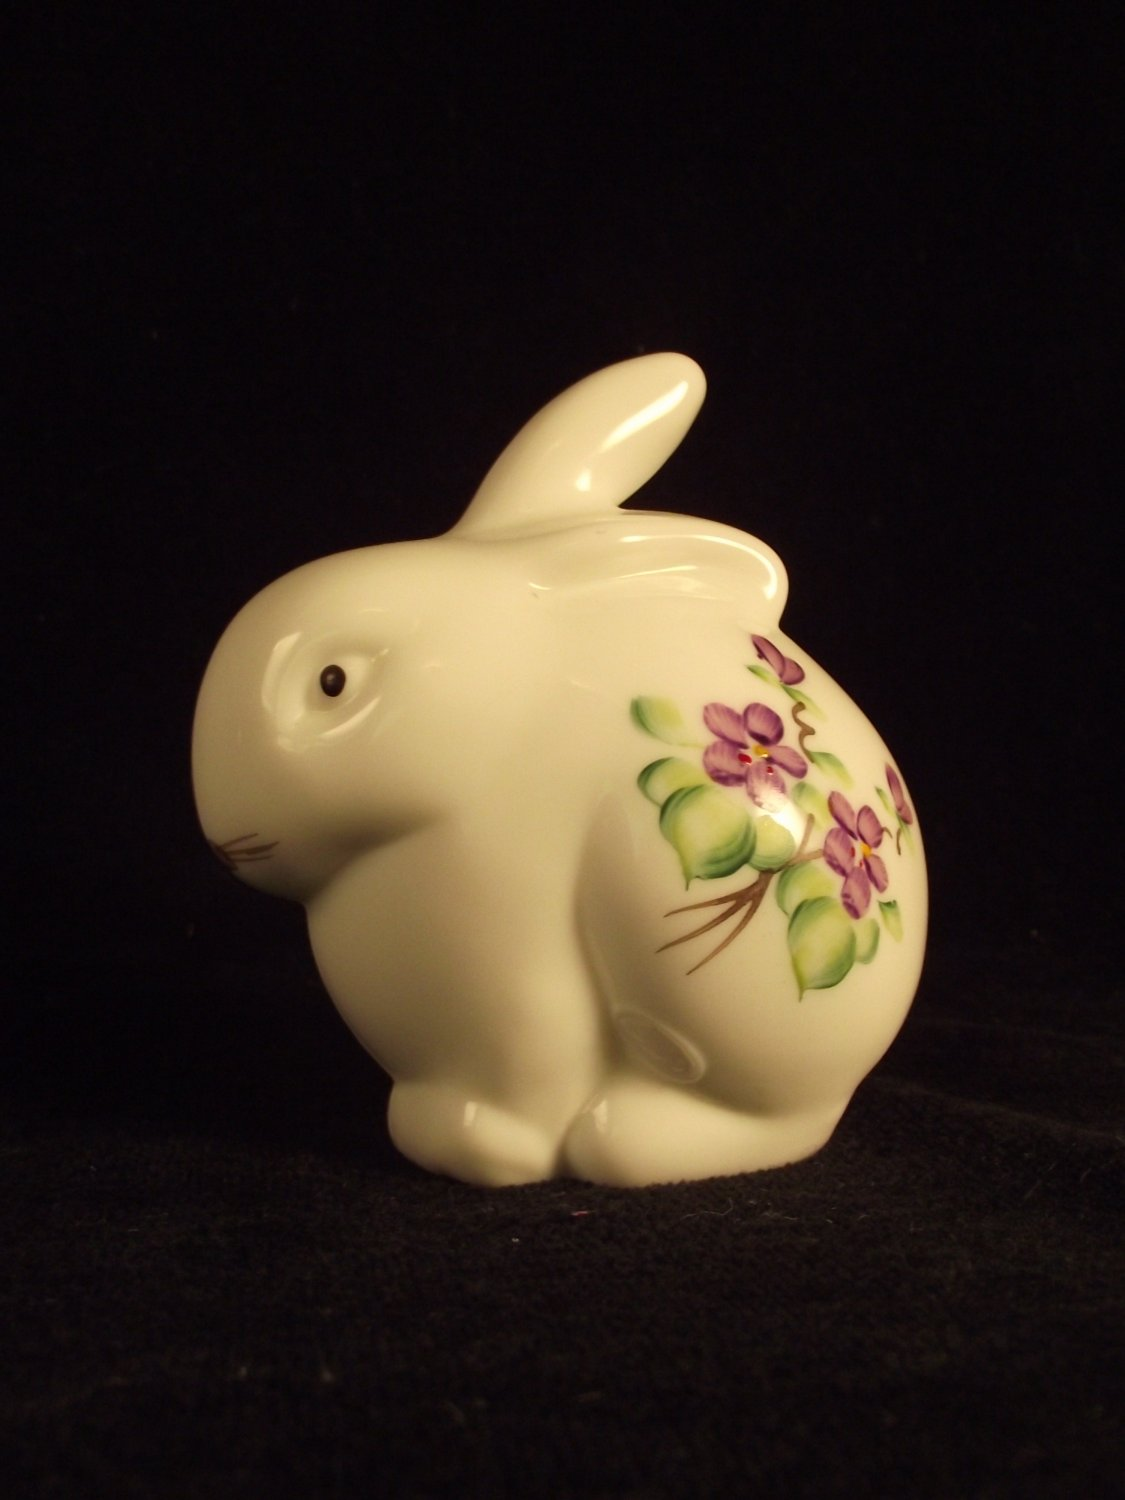 Vintage Fenton Art Glass Violets in the Snow Rabbit signed by Kay Cunningham Mint Condition